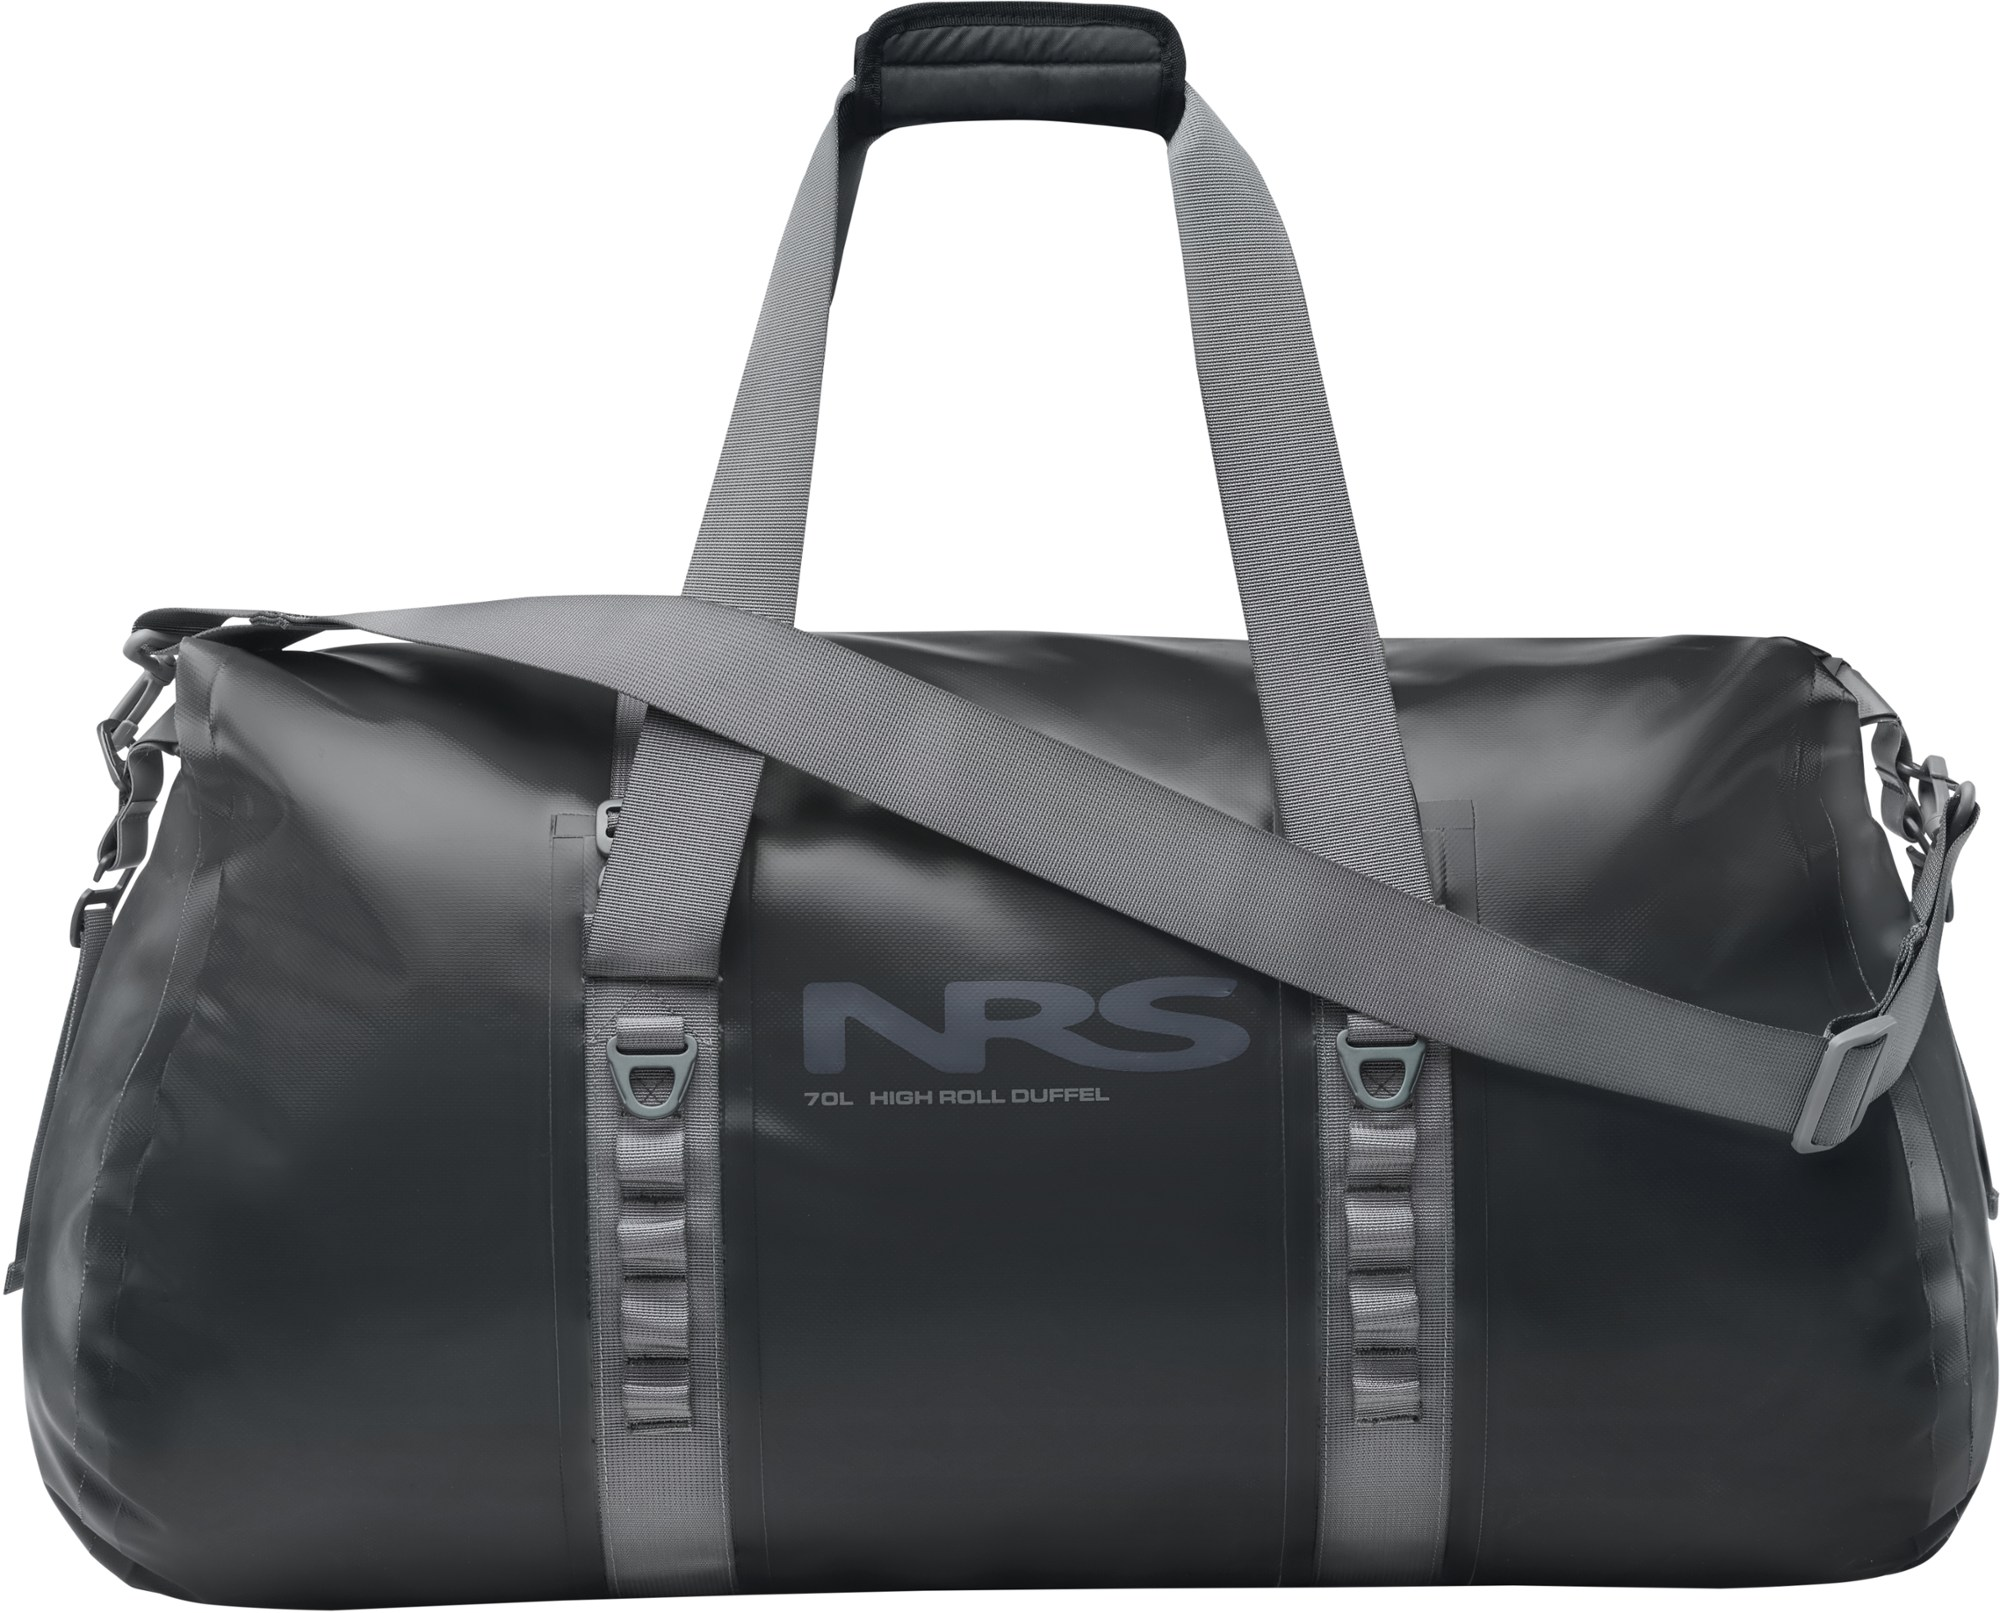 NRS High Roll Duffel Dry Bag - 70 Liters